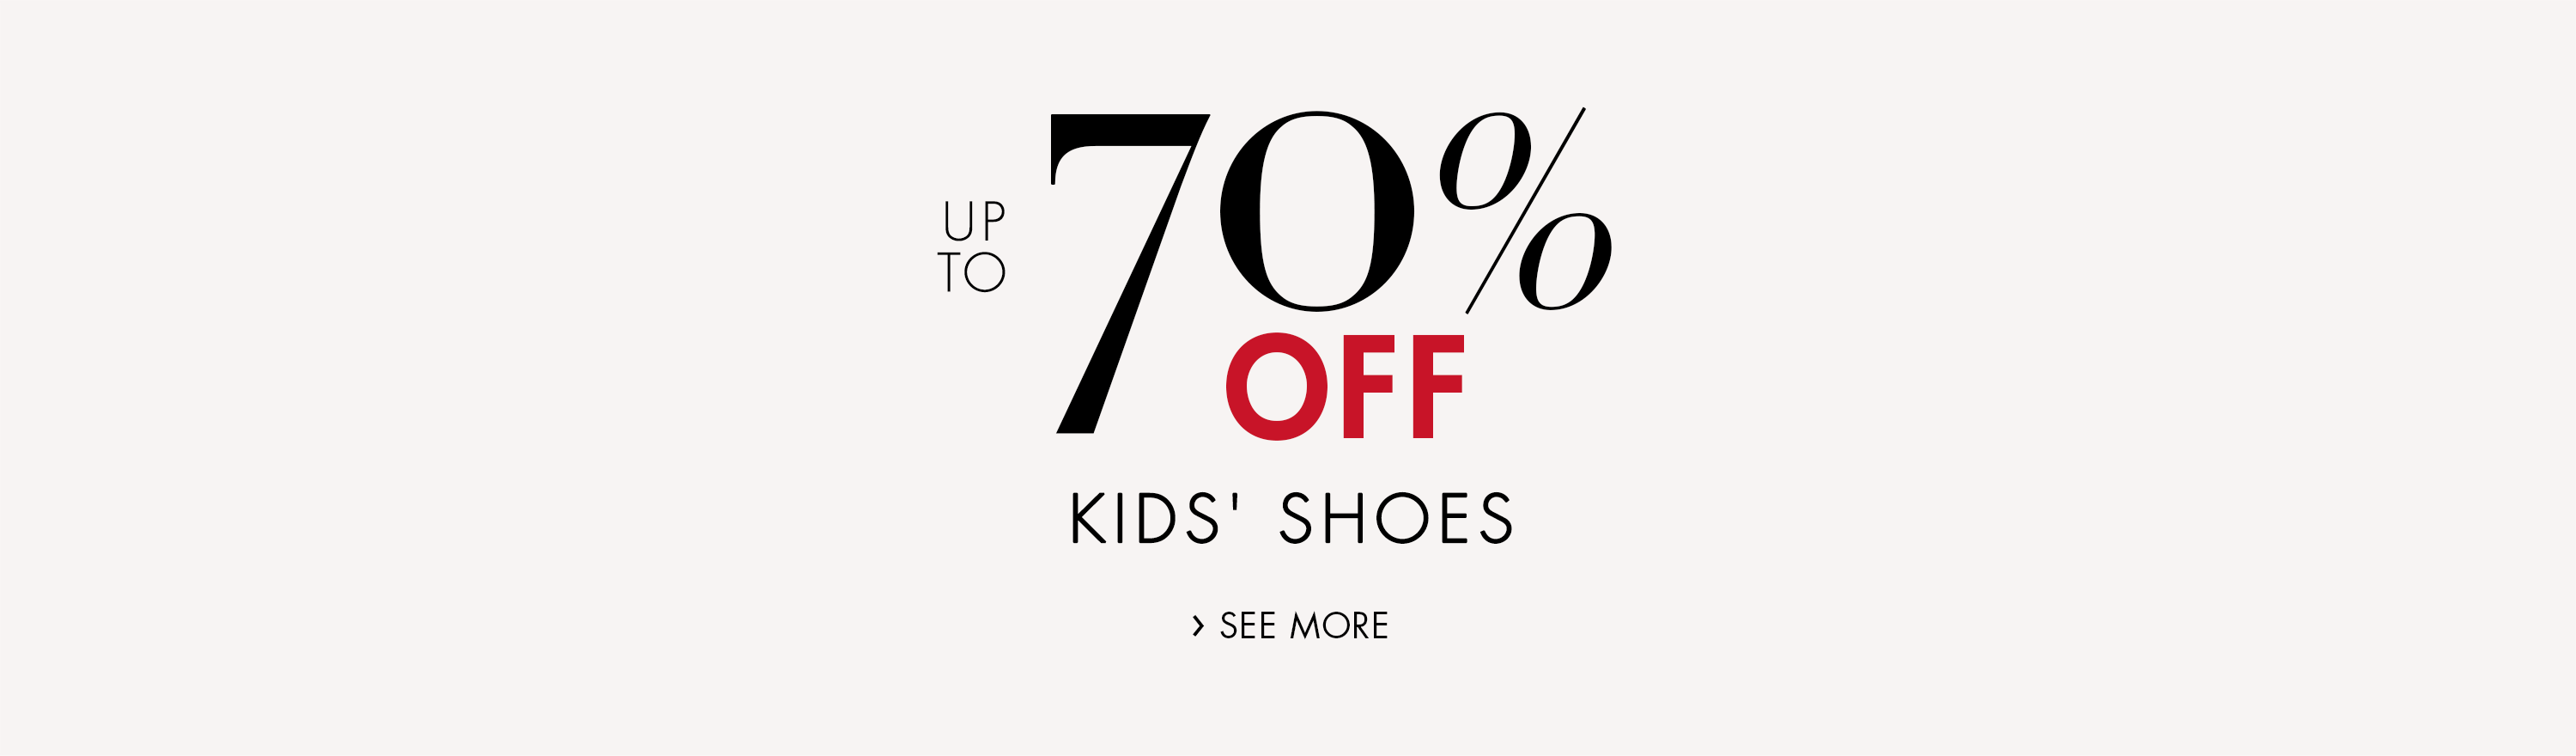 Up to 70% Off Kids' Shoes